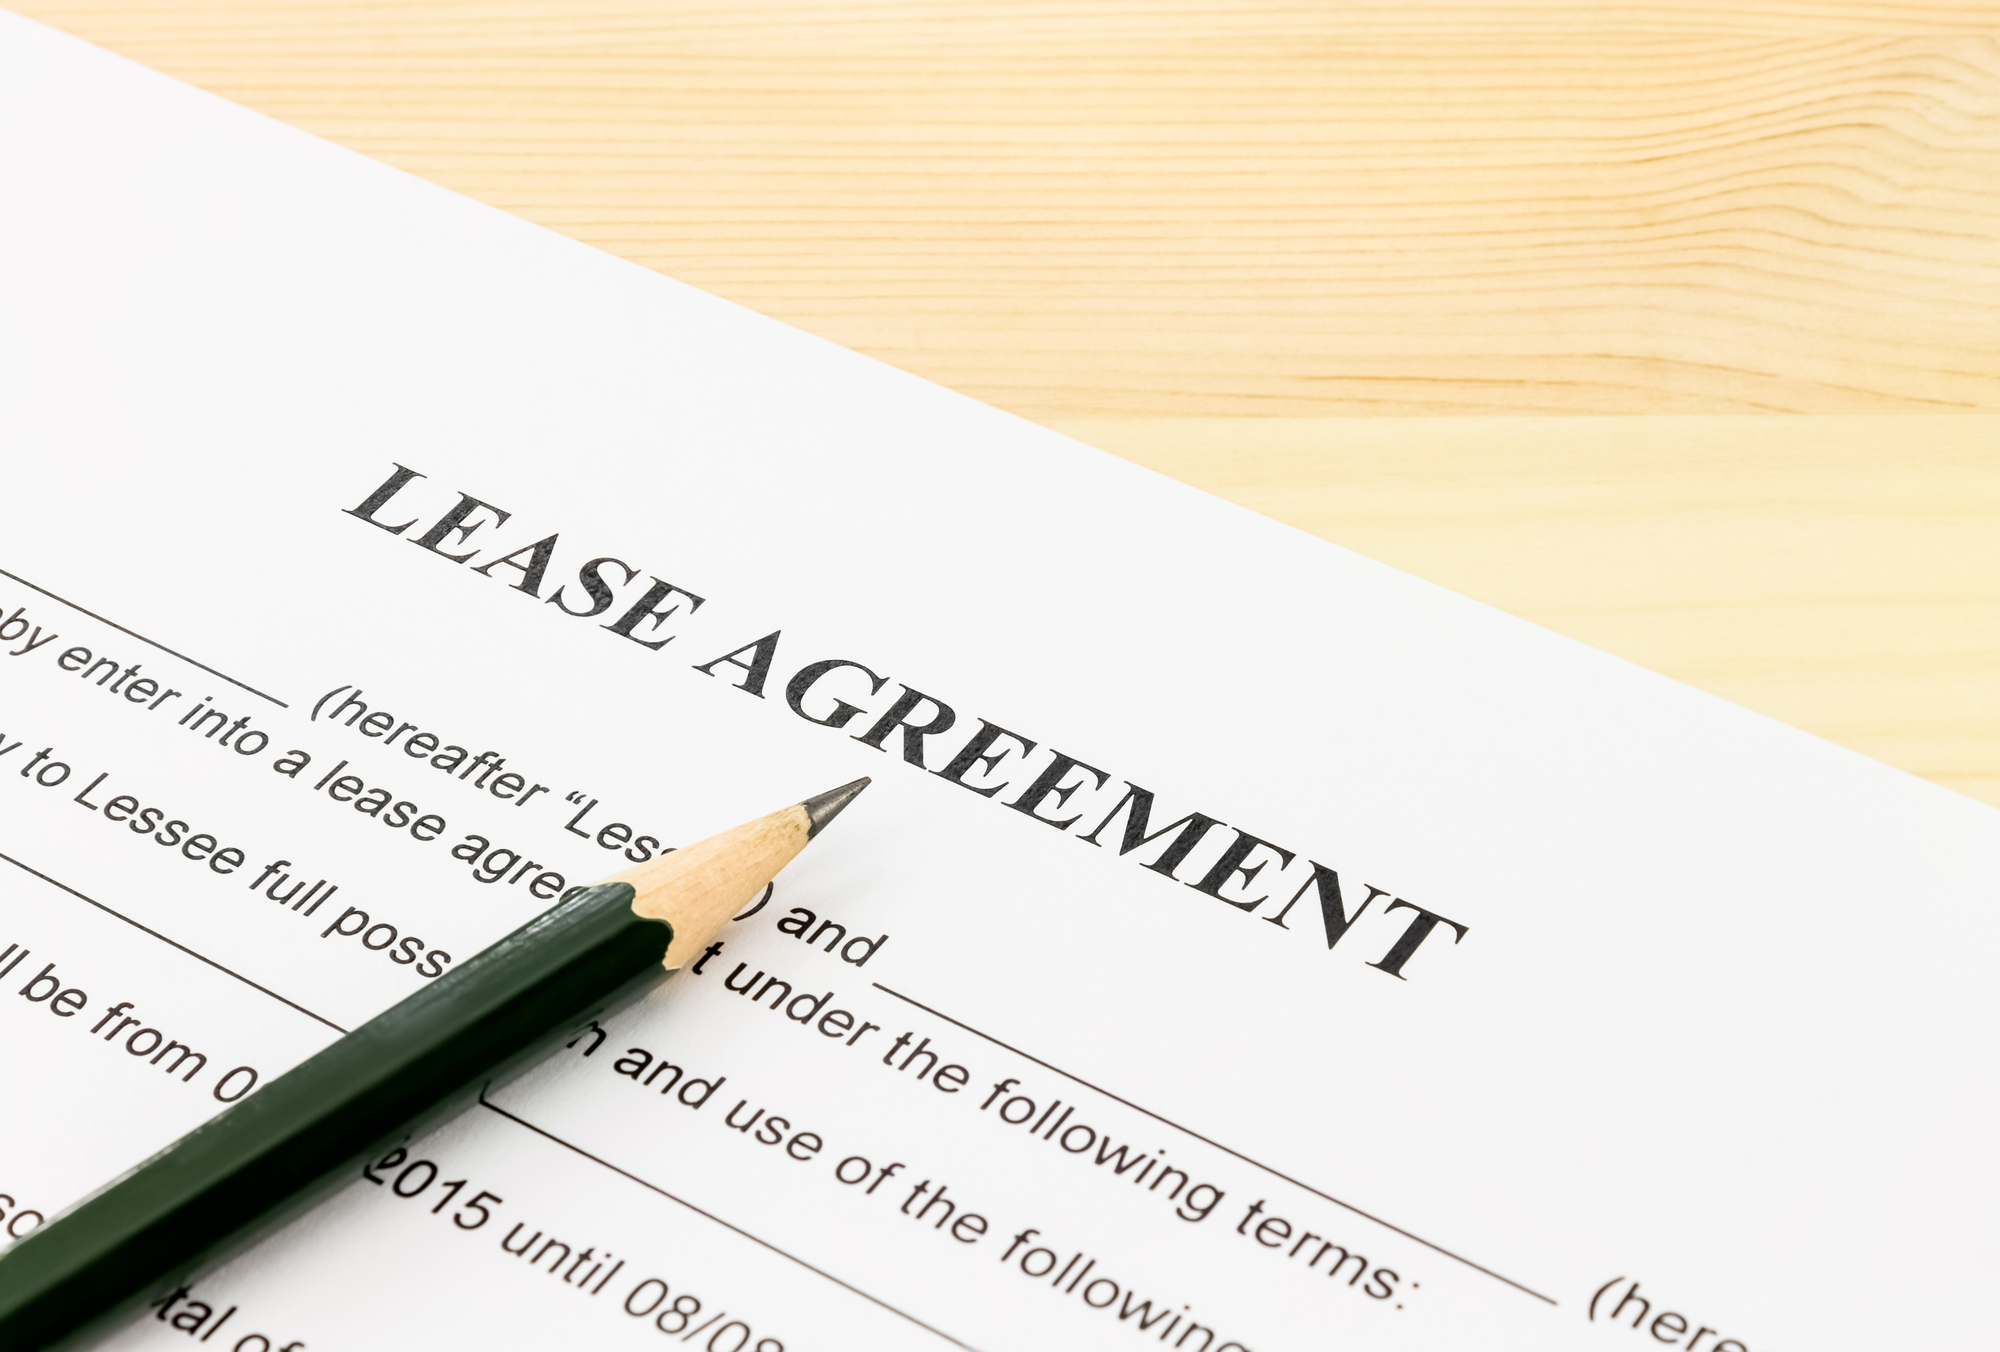 Lease Agreement Contract Document and Pencil Bottom Left Corner